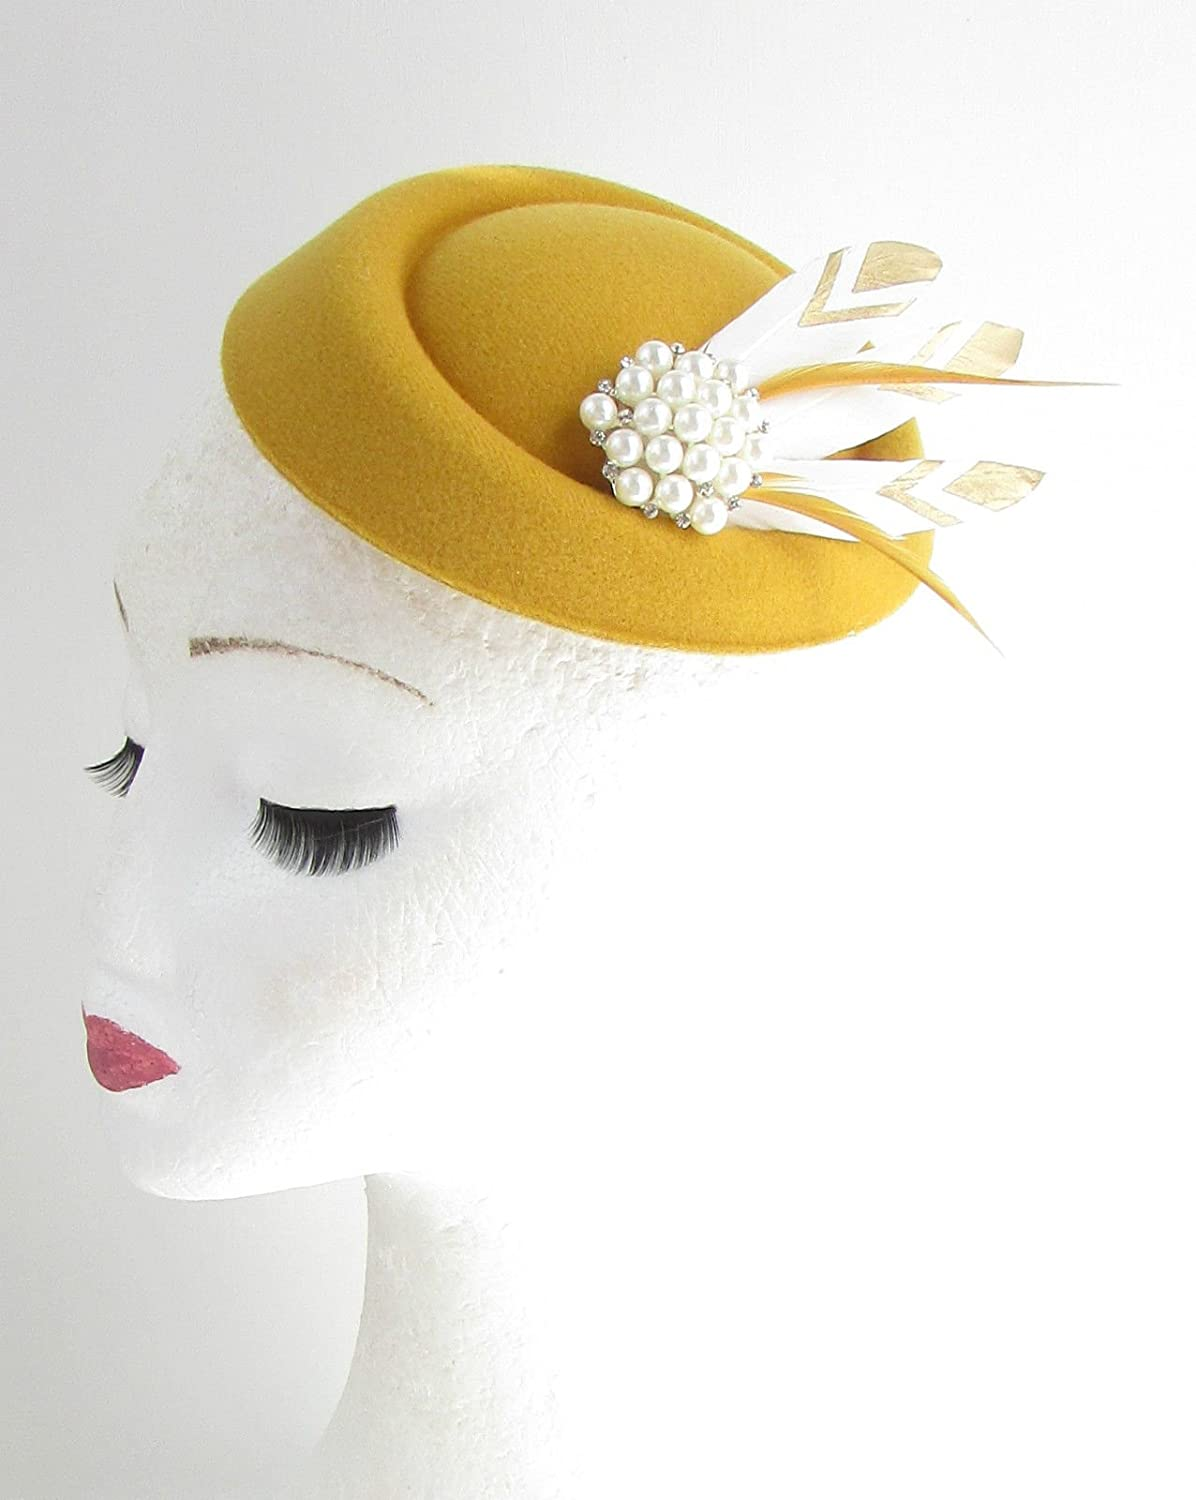 8923595046782 Mustard Gold White Feather Pillbox Fascinator Hat Races Vtg Yellow 40s Hair  552  EXCLUSIVELY SOLD BY STARCROSSED BEAUTY   Amazon.co.uk  Beauty